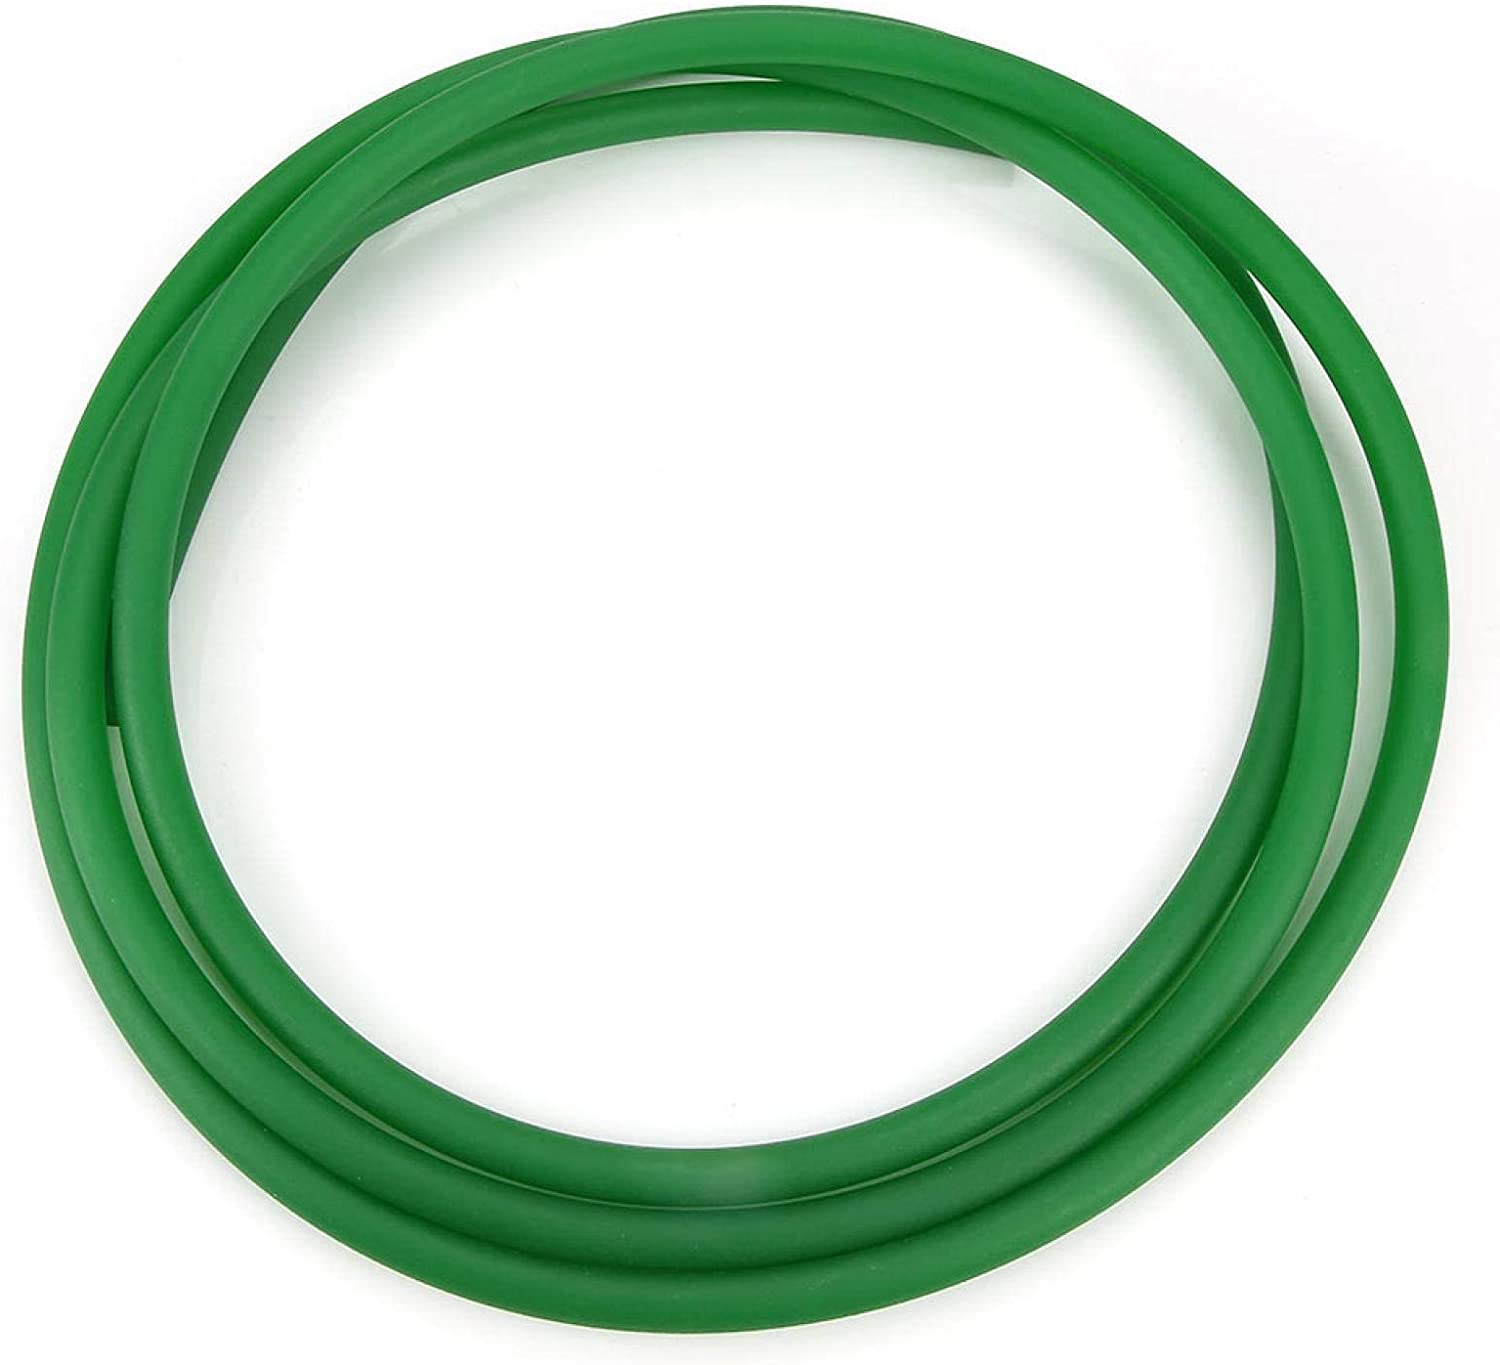 Fockety Polyurethane Belt Price reduction Green Surfac Installation Easy Rough Animer and price revision